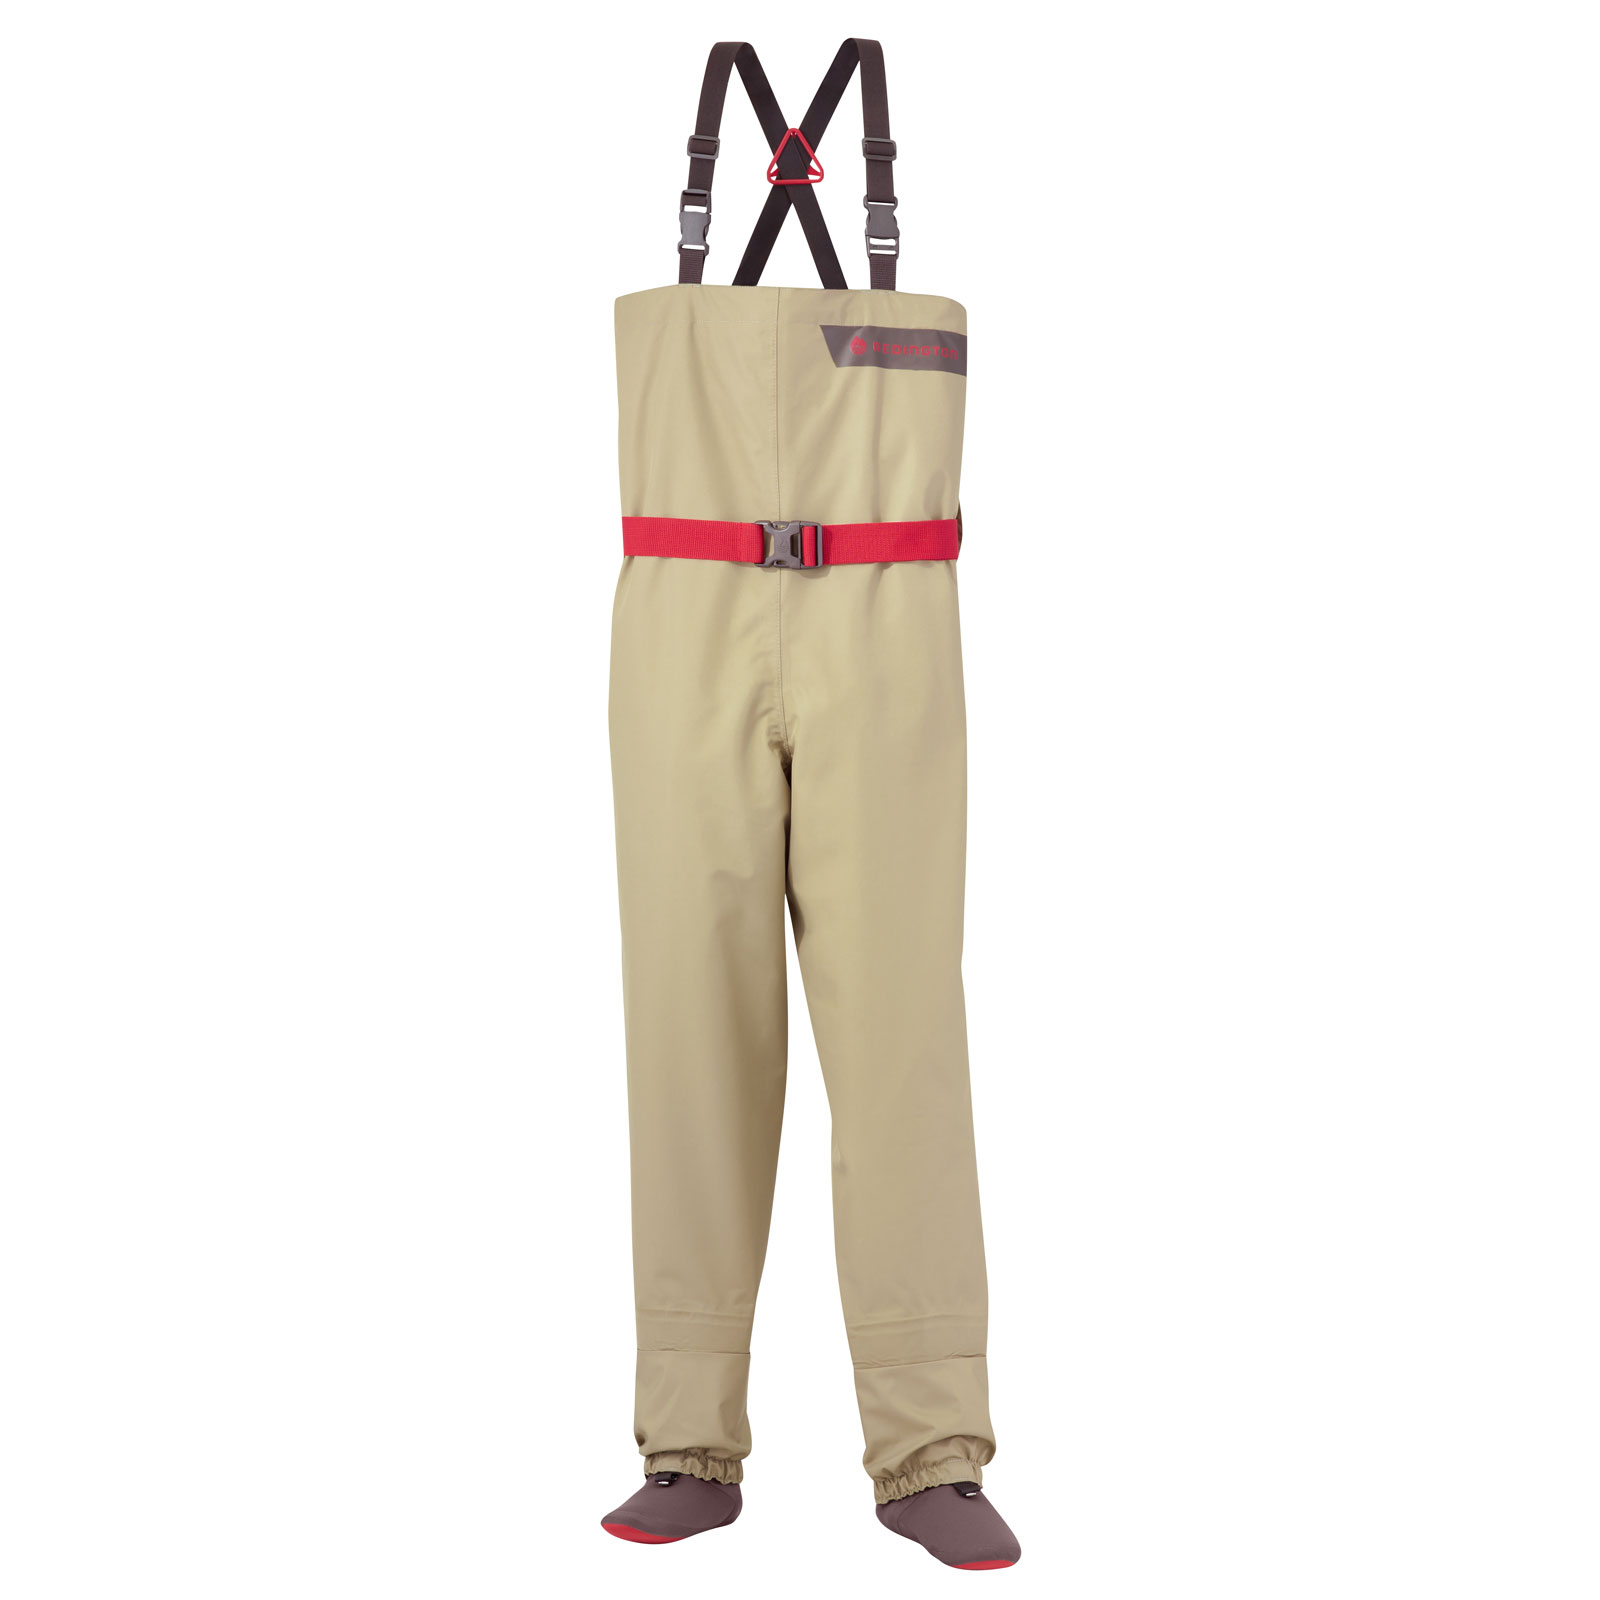 Redington crosswater youth fly fishing kids chest wader for Fly fishing waders